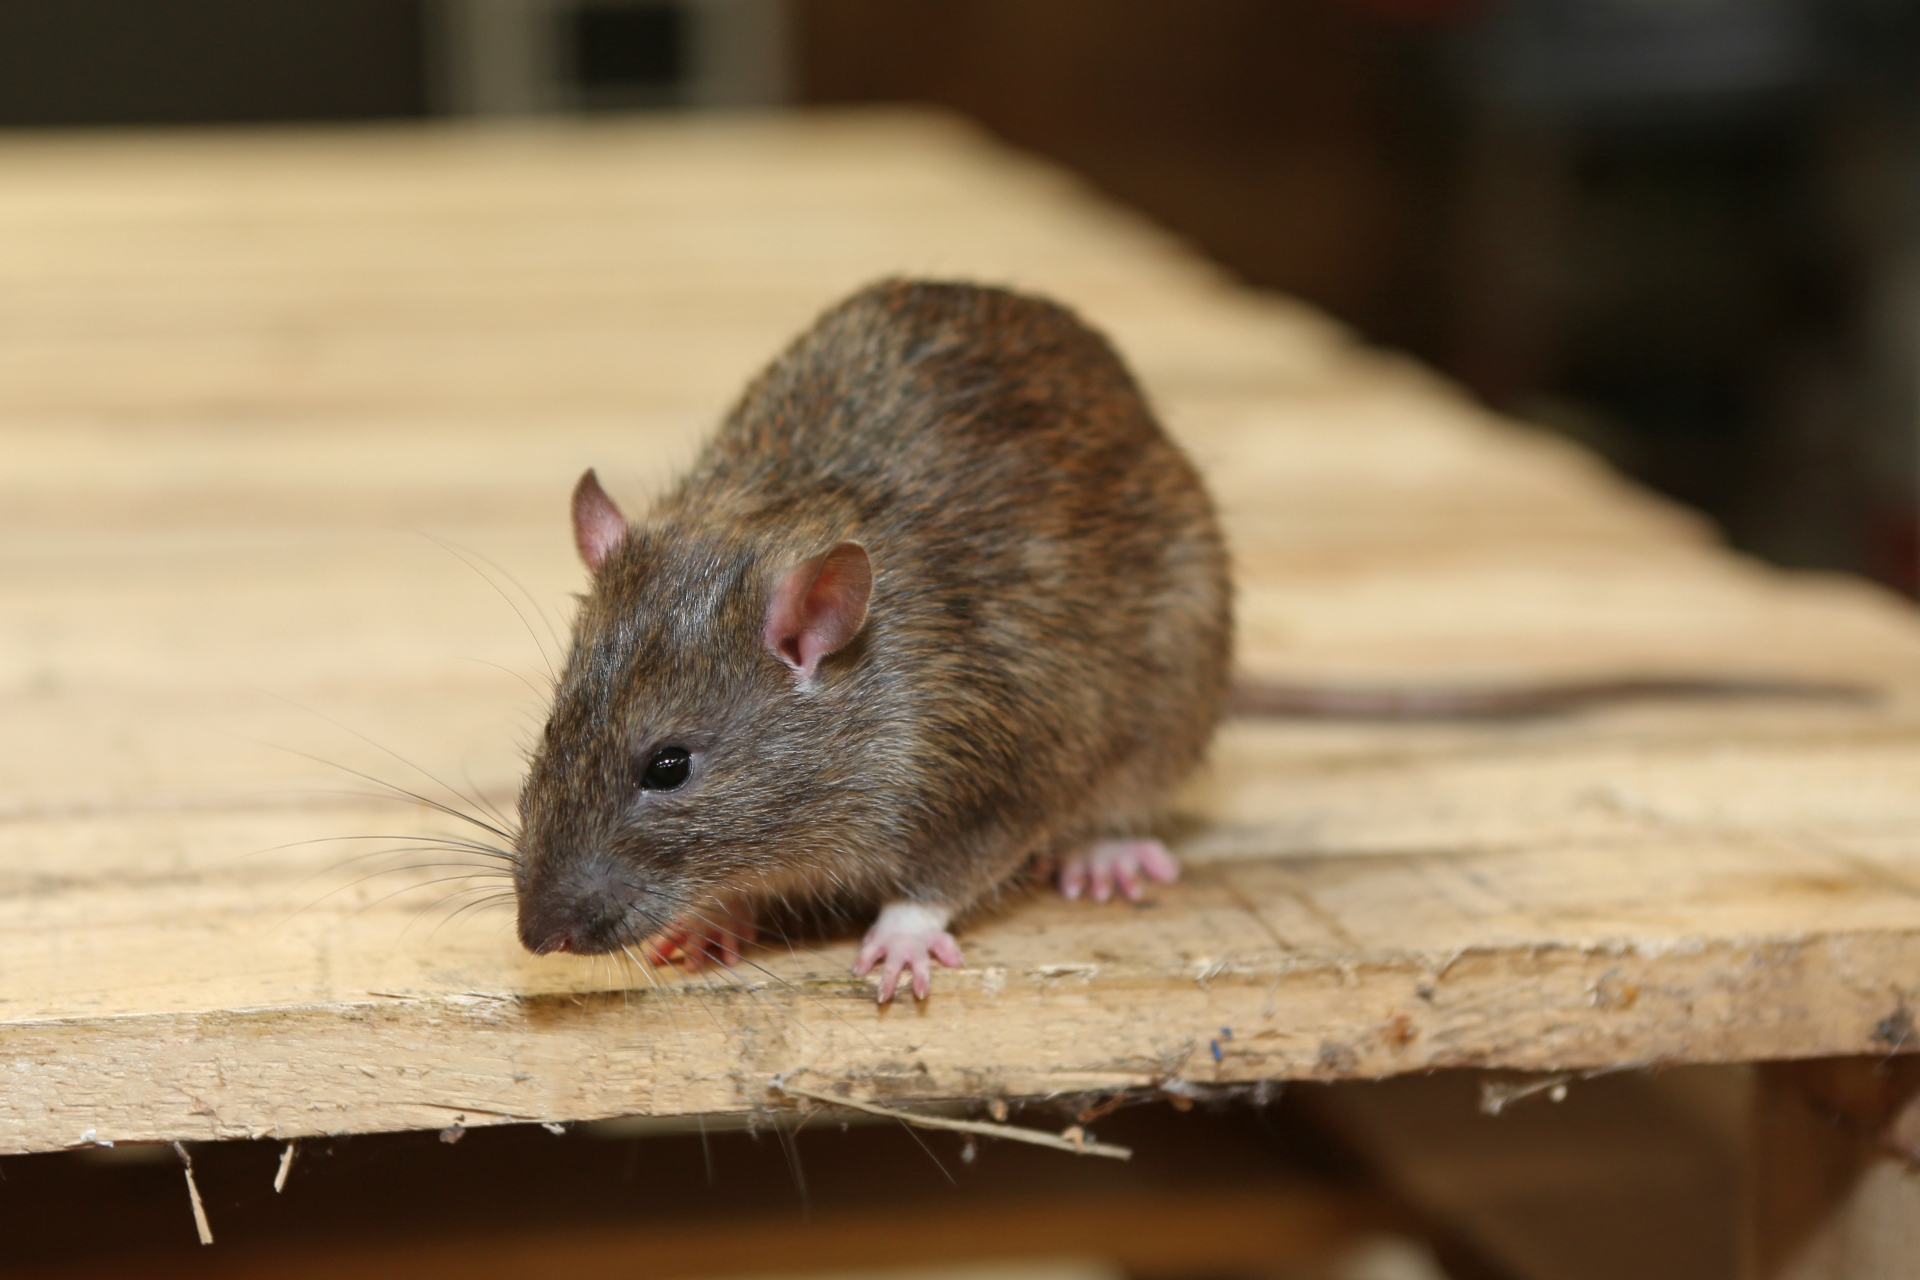 Rat Infestation, Pest Control in Longfield, Hartley, New Ash Green, DA3. Call Now 020 8166 9746